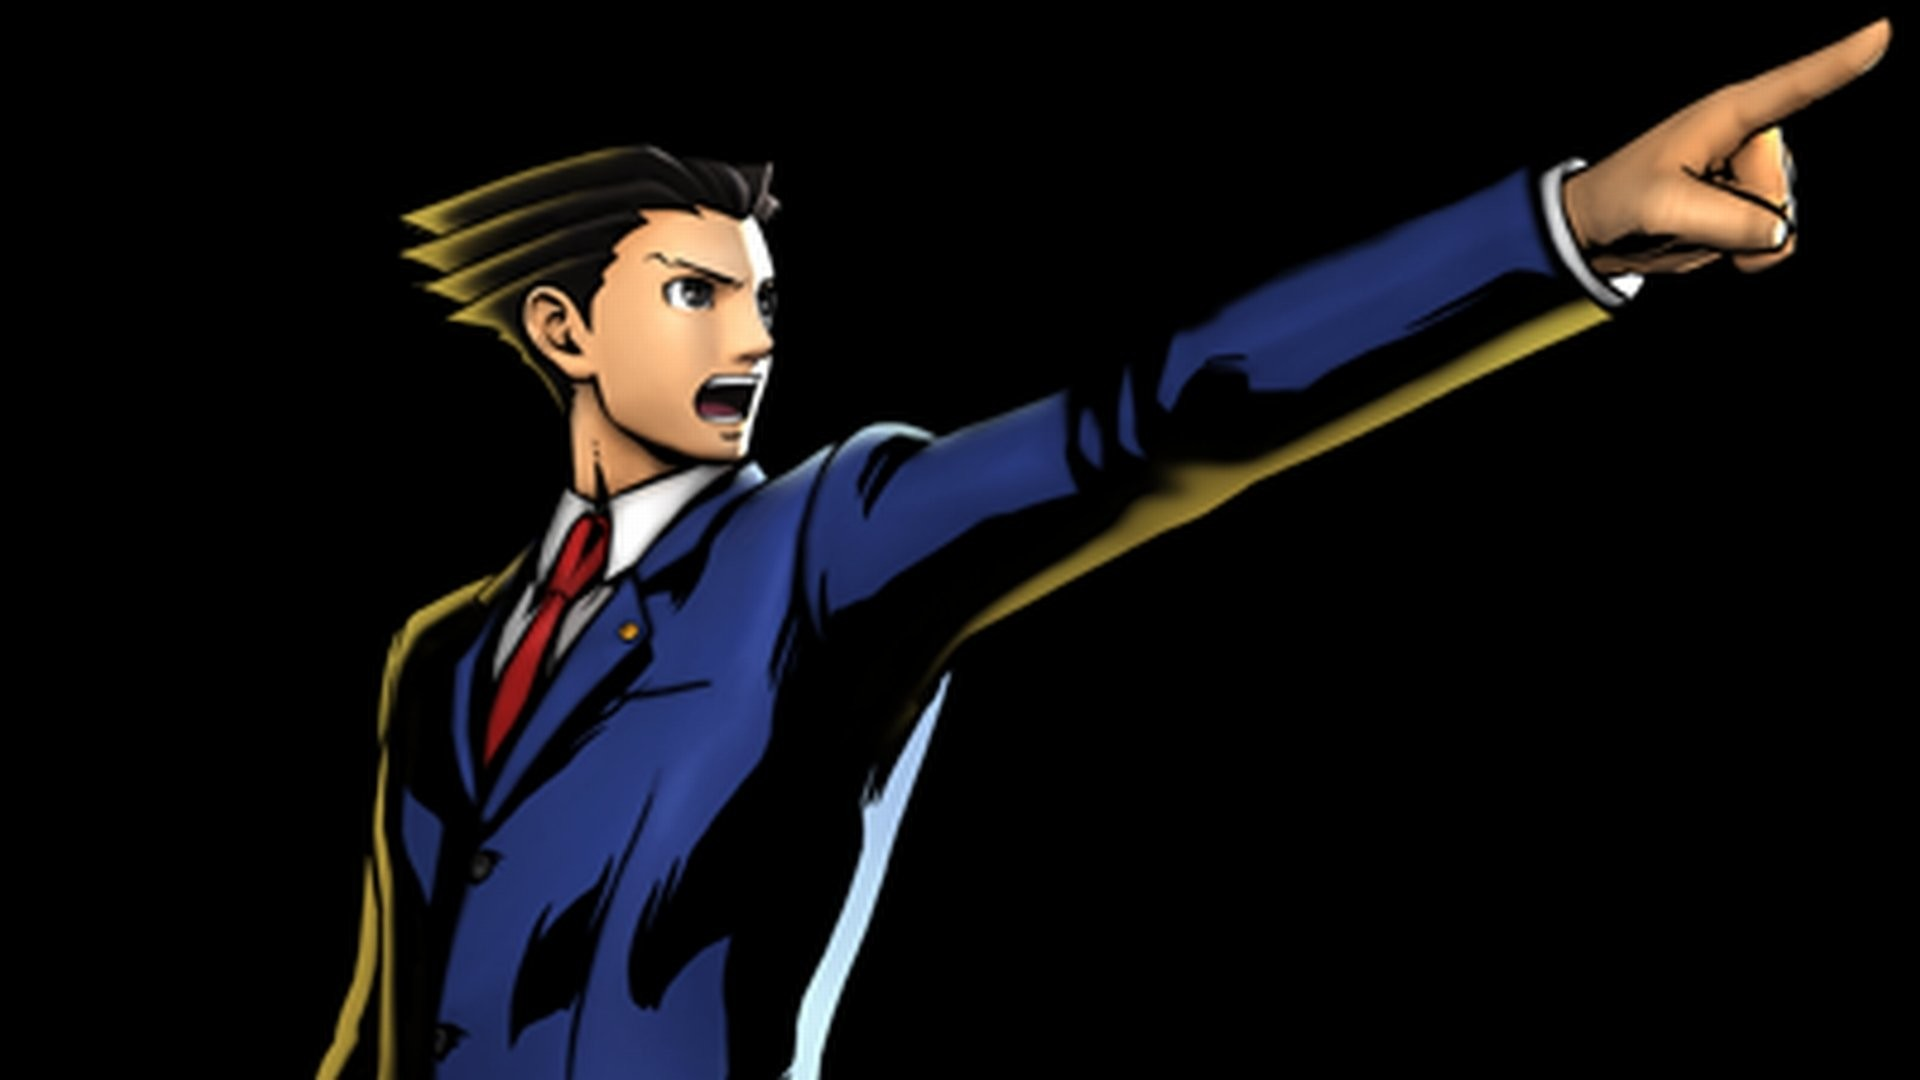 1920x1080 Explore More Wallpapers in the Phoenix Wright: Ace Attorney Subcategory!